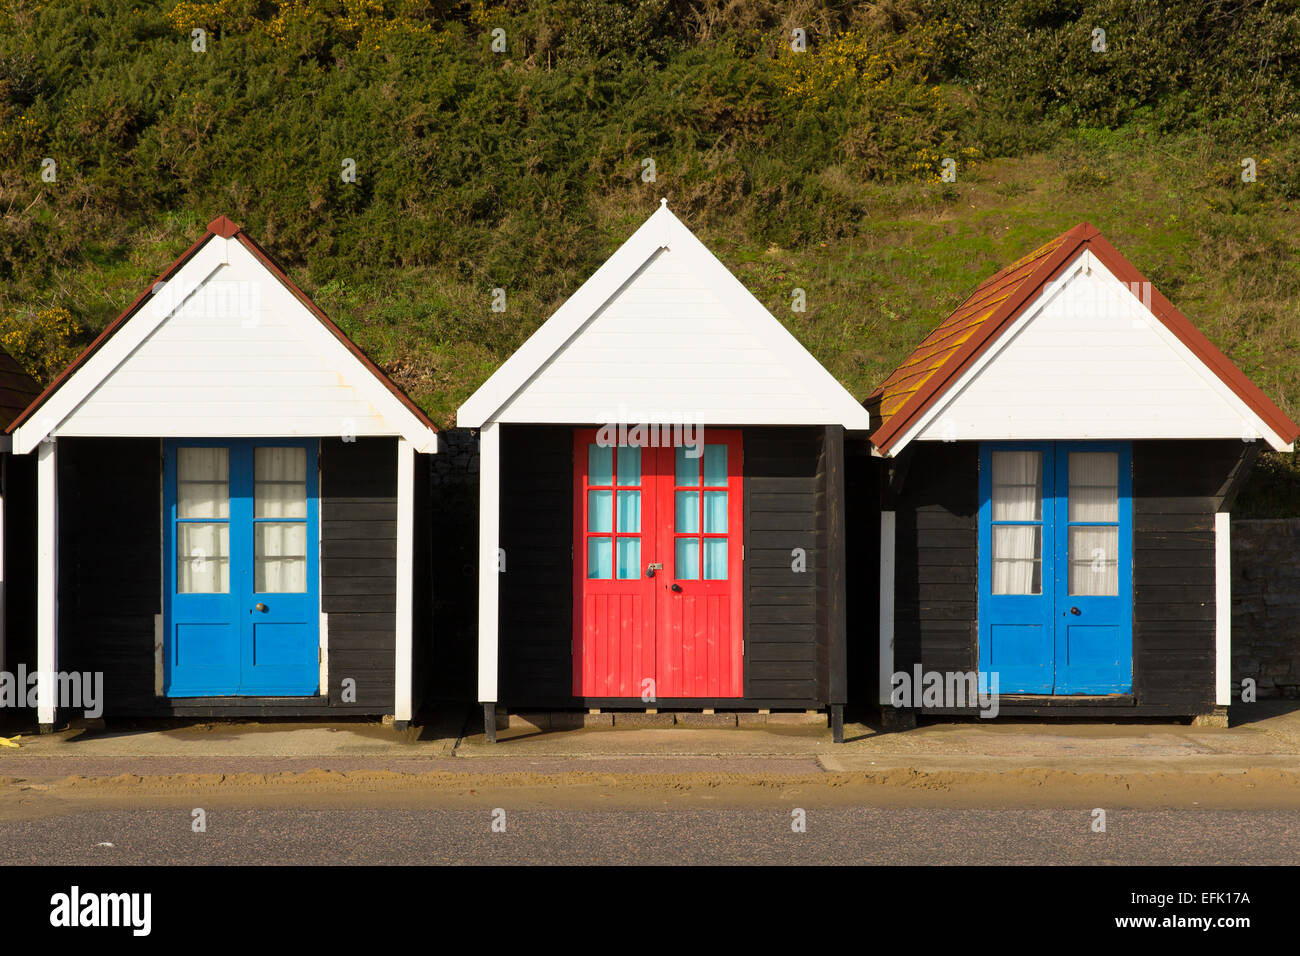 Three Colourful Beach Huts With Blue And Red Doors In A Row Stock